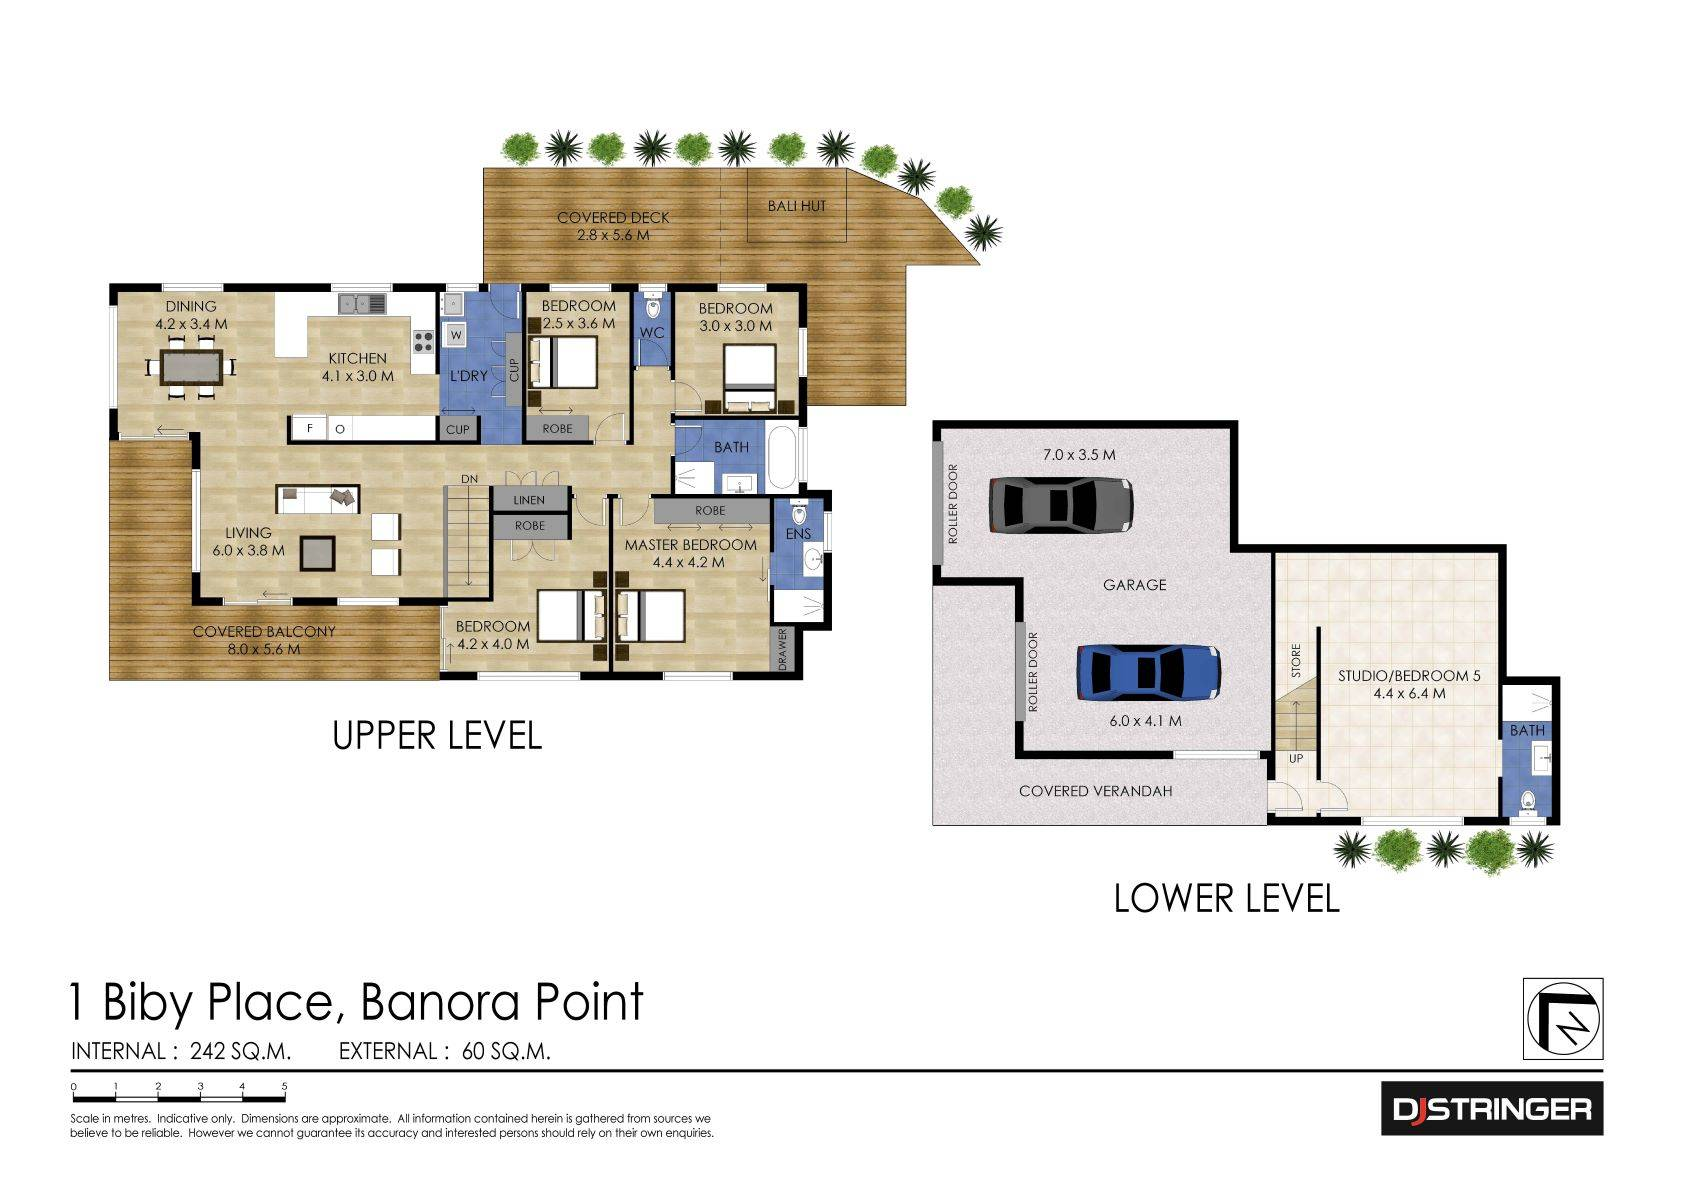 1 Biby Place Banora Point